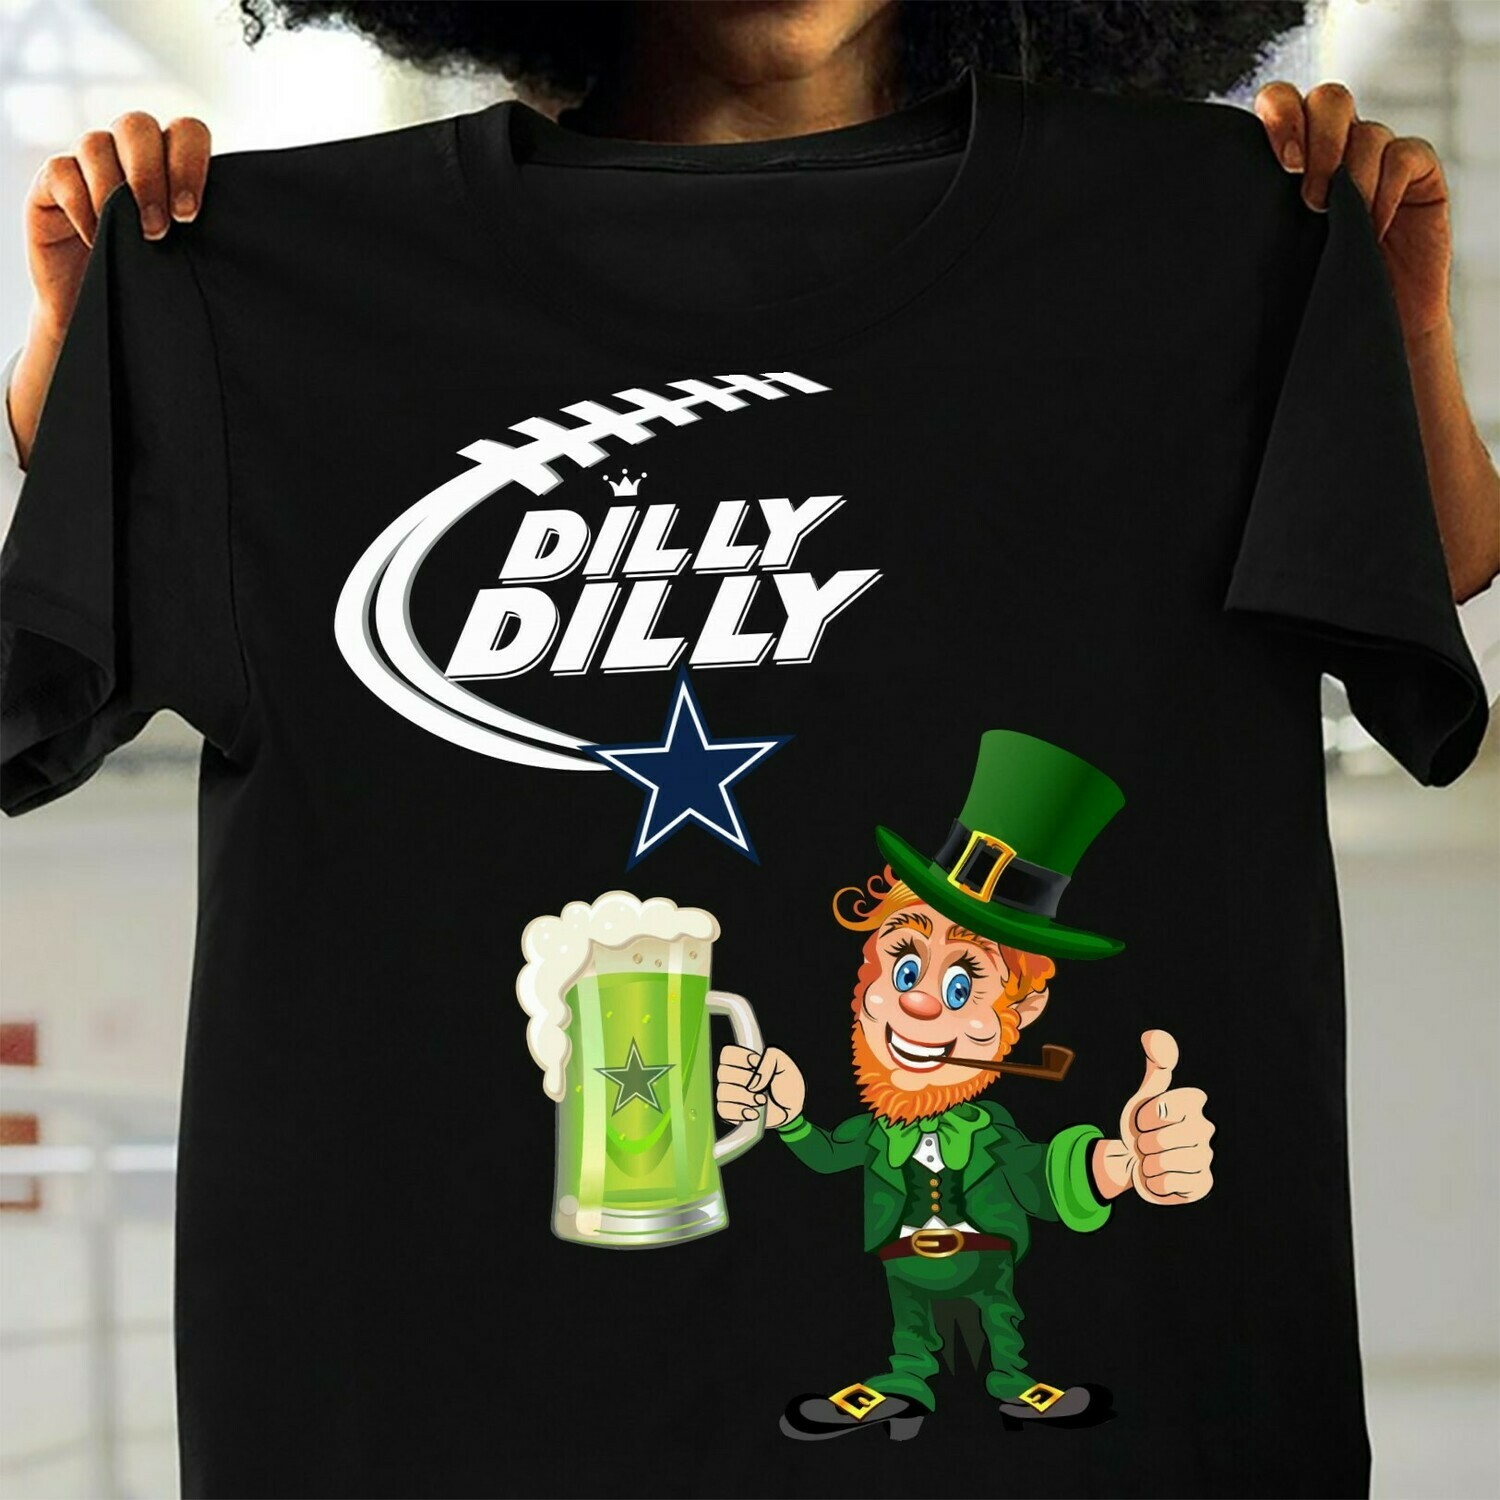 Dilly Dilly Leprechaun Irish hug beer mug Dallas Cowboys Happy St Patrick's Day NFL Football Team Fan  T-Shirt Hoodie Sweatshirt Sweater Tee Kids Youth Gifts Jolly Family Gifts